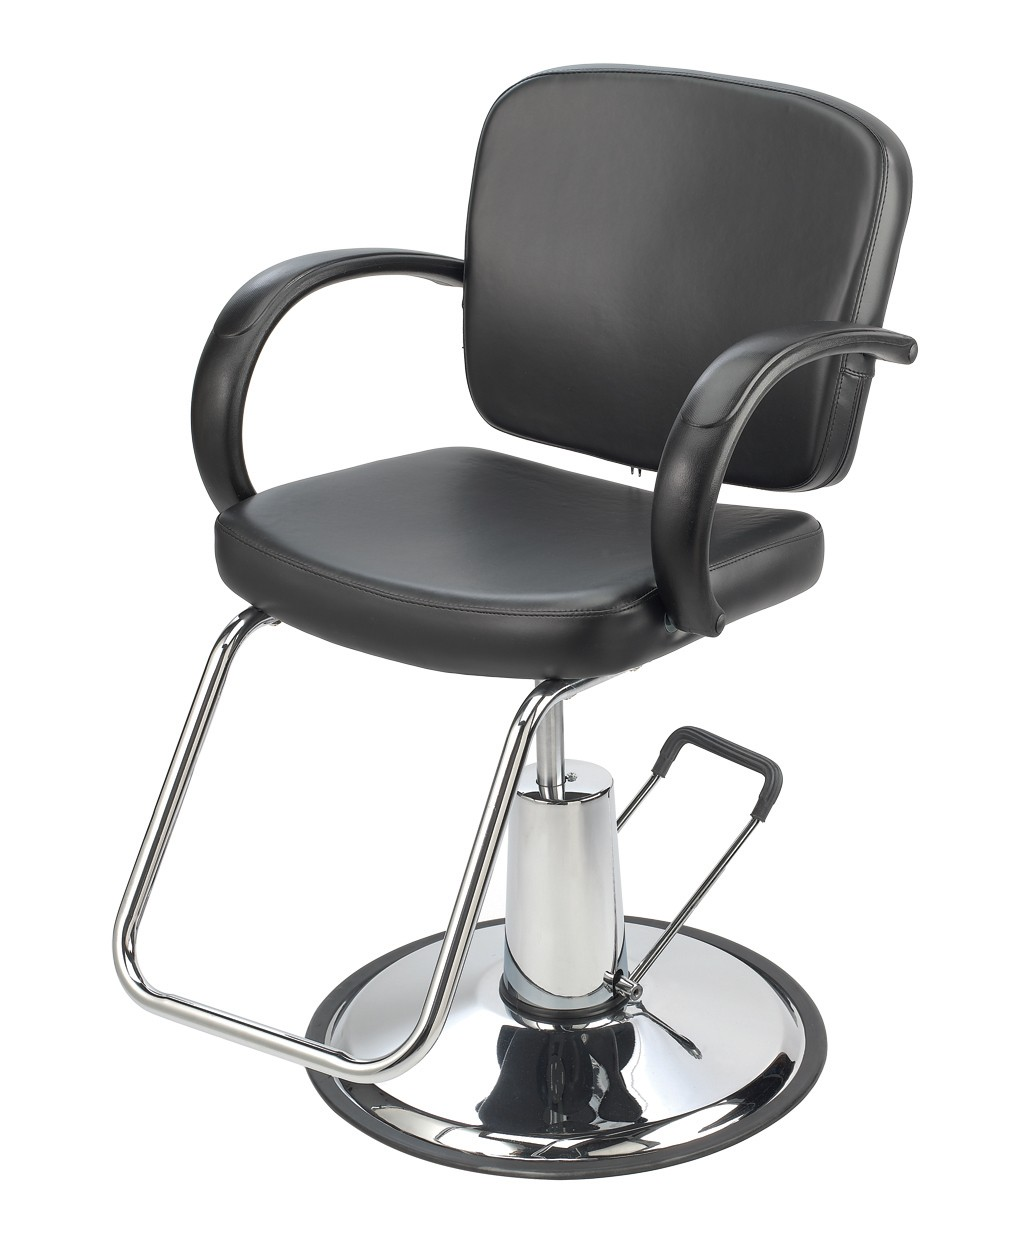 hydraulic styling chair. Pibbs 3606 Messina Styling Chair Hydraulic A